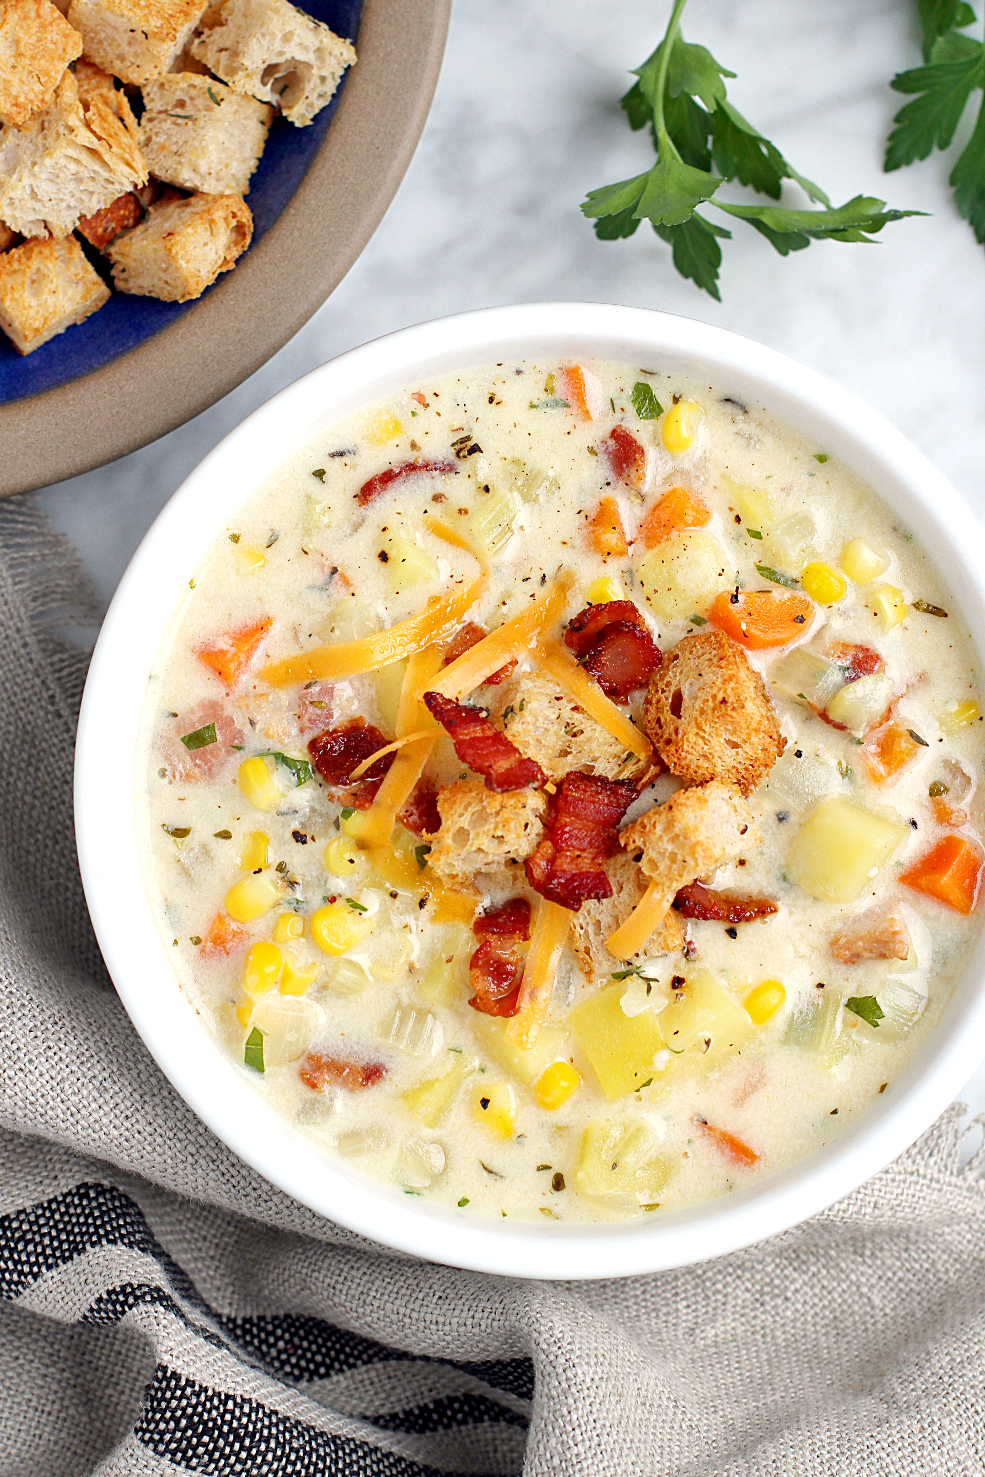 Close-up image of bacon, cheese and corn chowder.